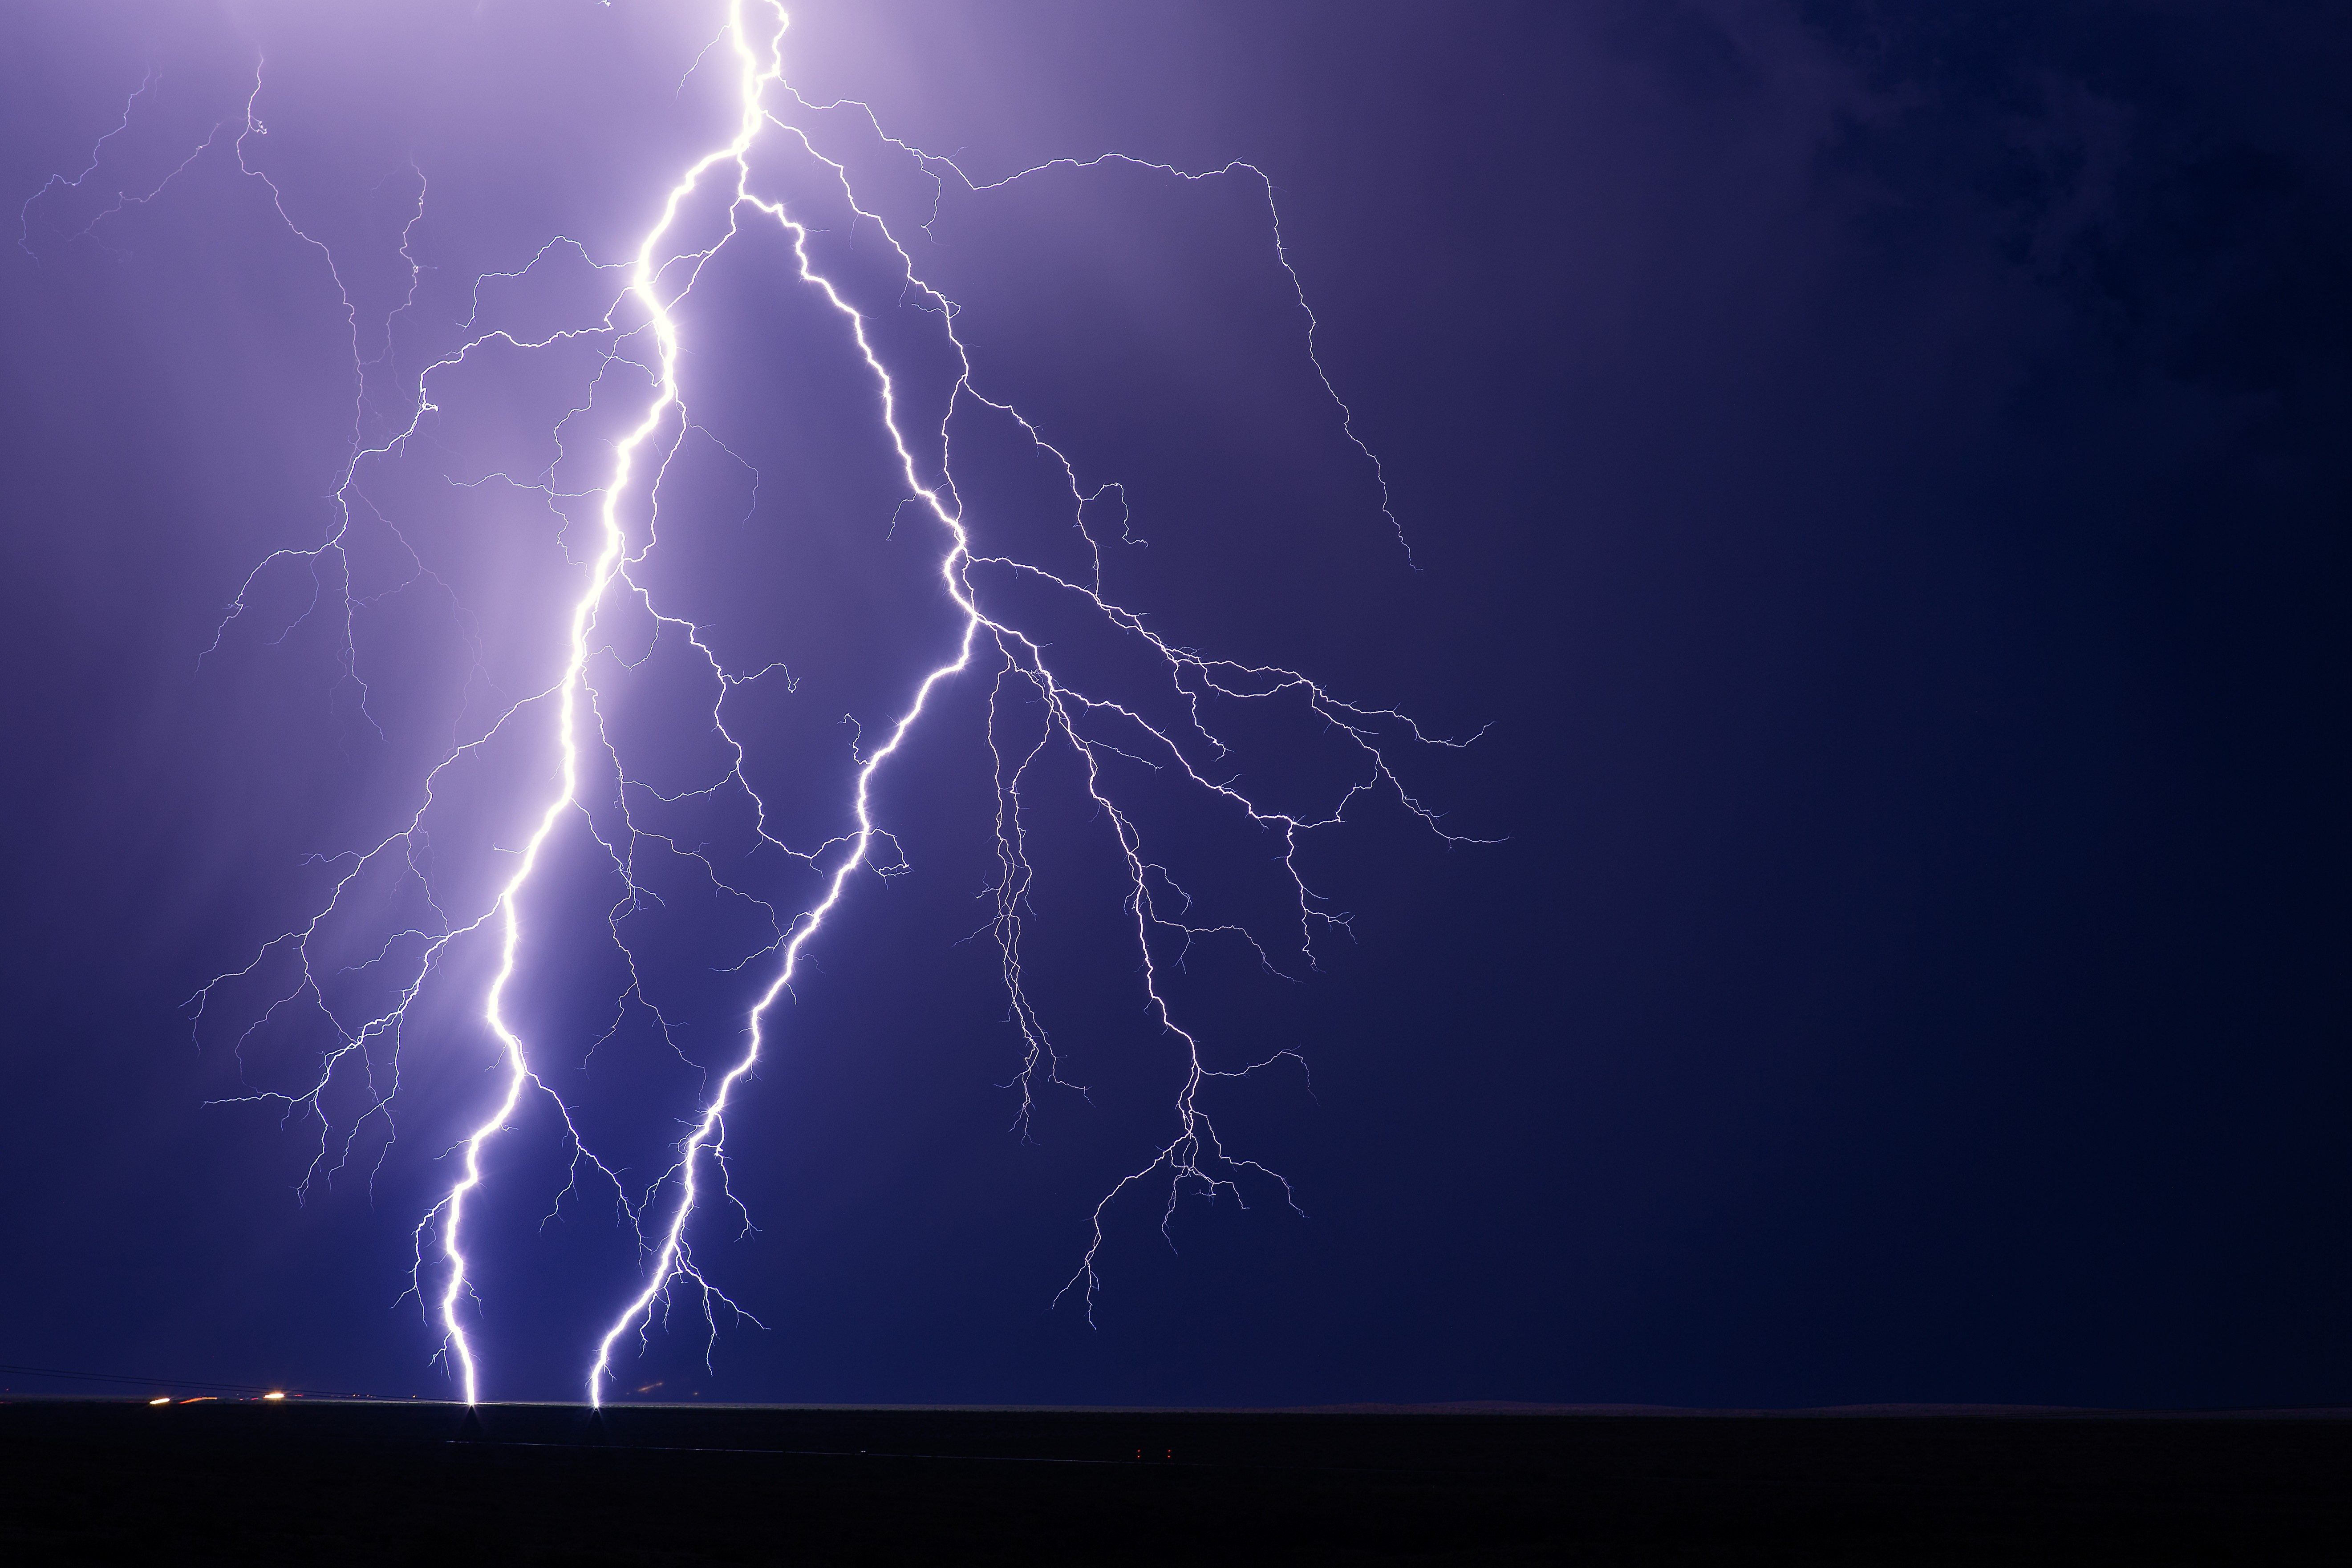 Lightning bolts strike from a storm with a night sky background.